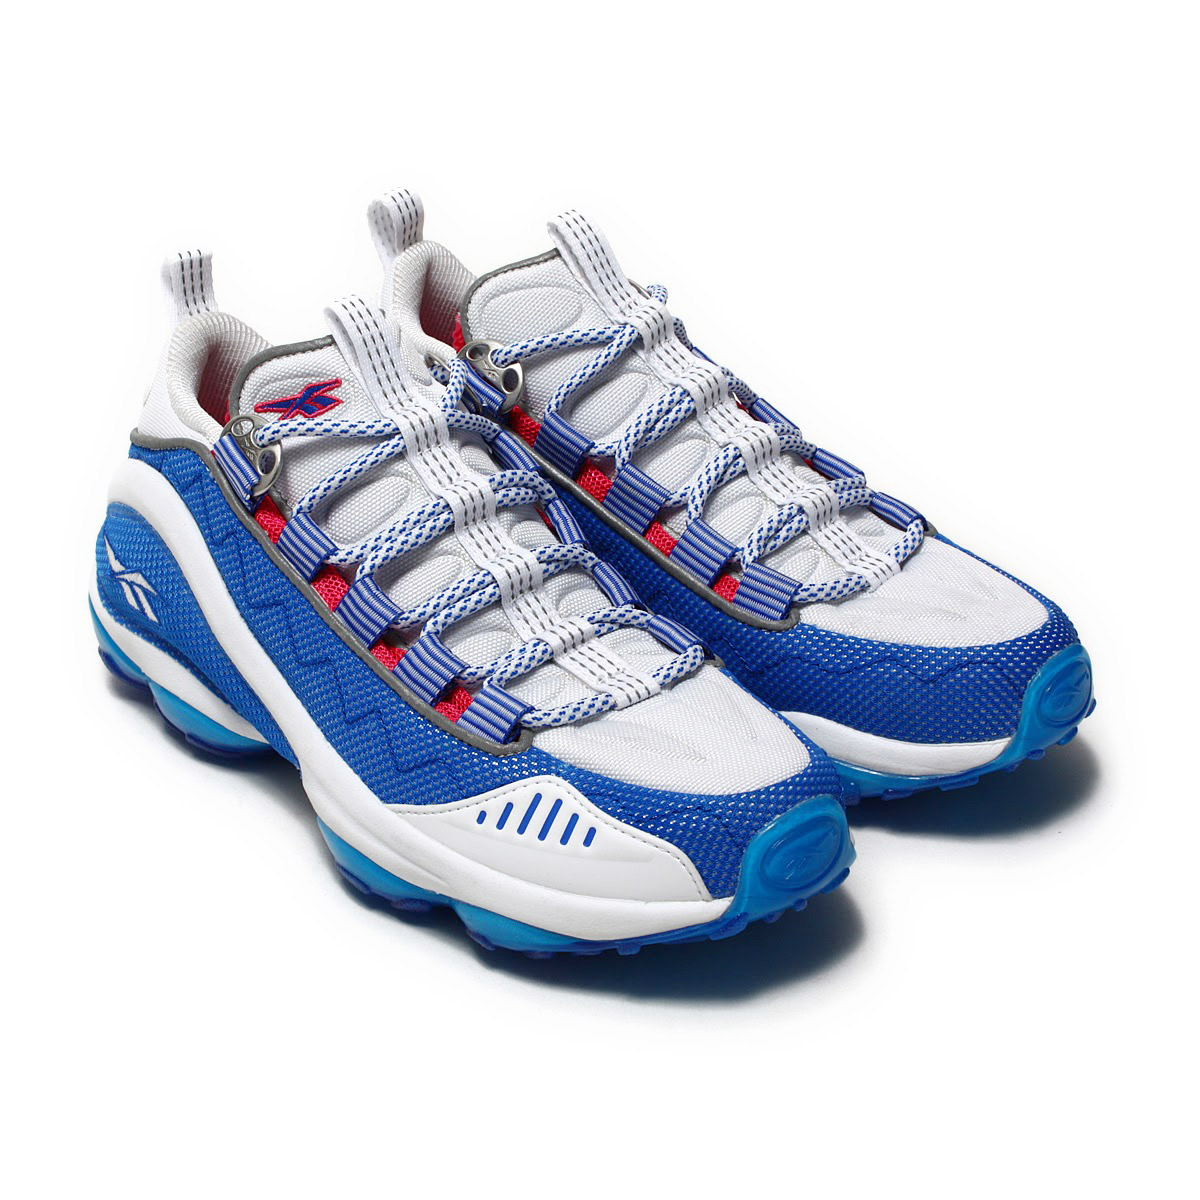 Reebok DMX RUN 10 OG(リーボック)(BITALBLUE/PINKFUSION/WHITE)18SP-S